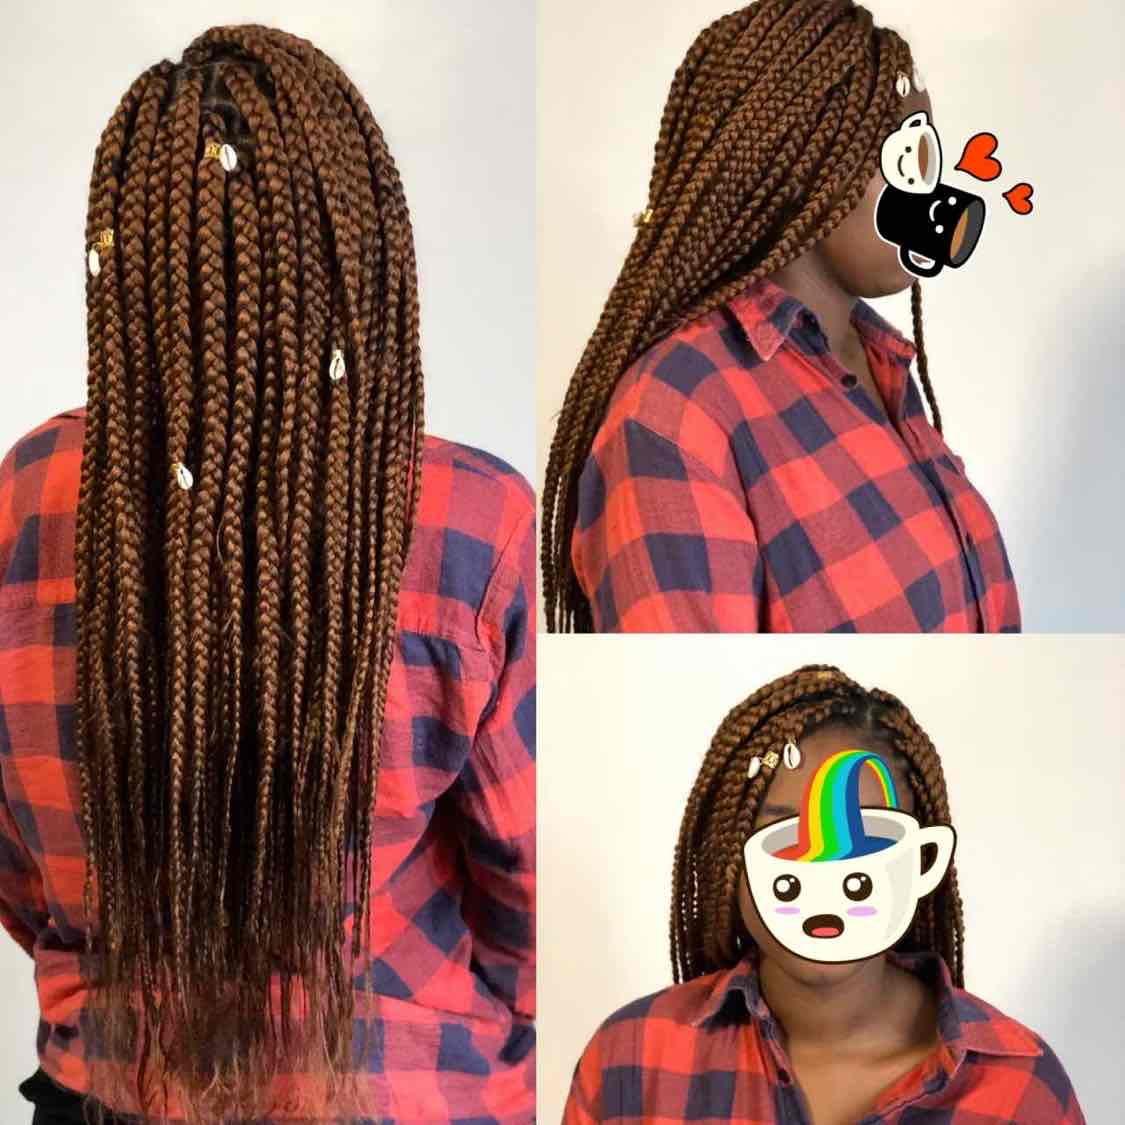 salon de coiffure afro tresse tresses box braids crochet braids vanilles tissages paris 75 77 78 91 92 93 94 95 YRAYRDTQ